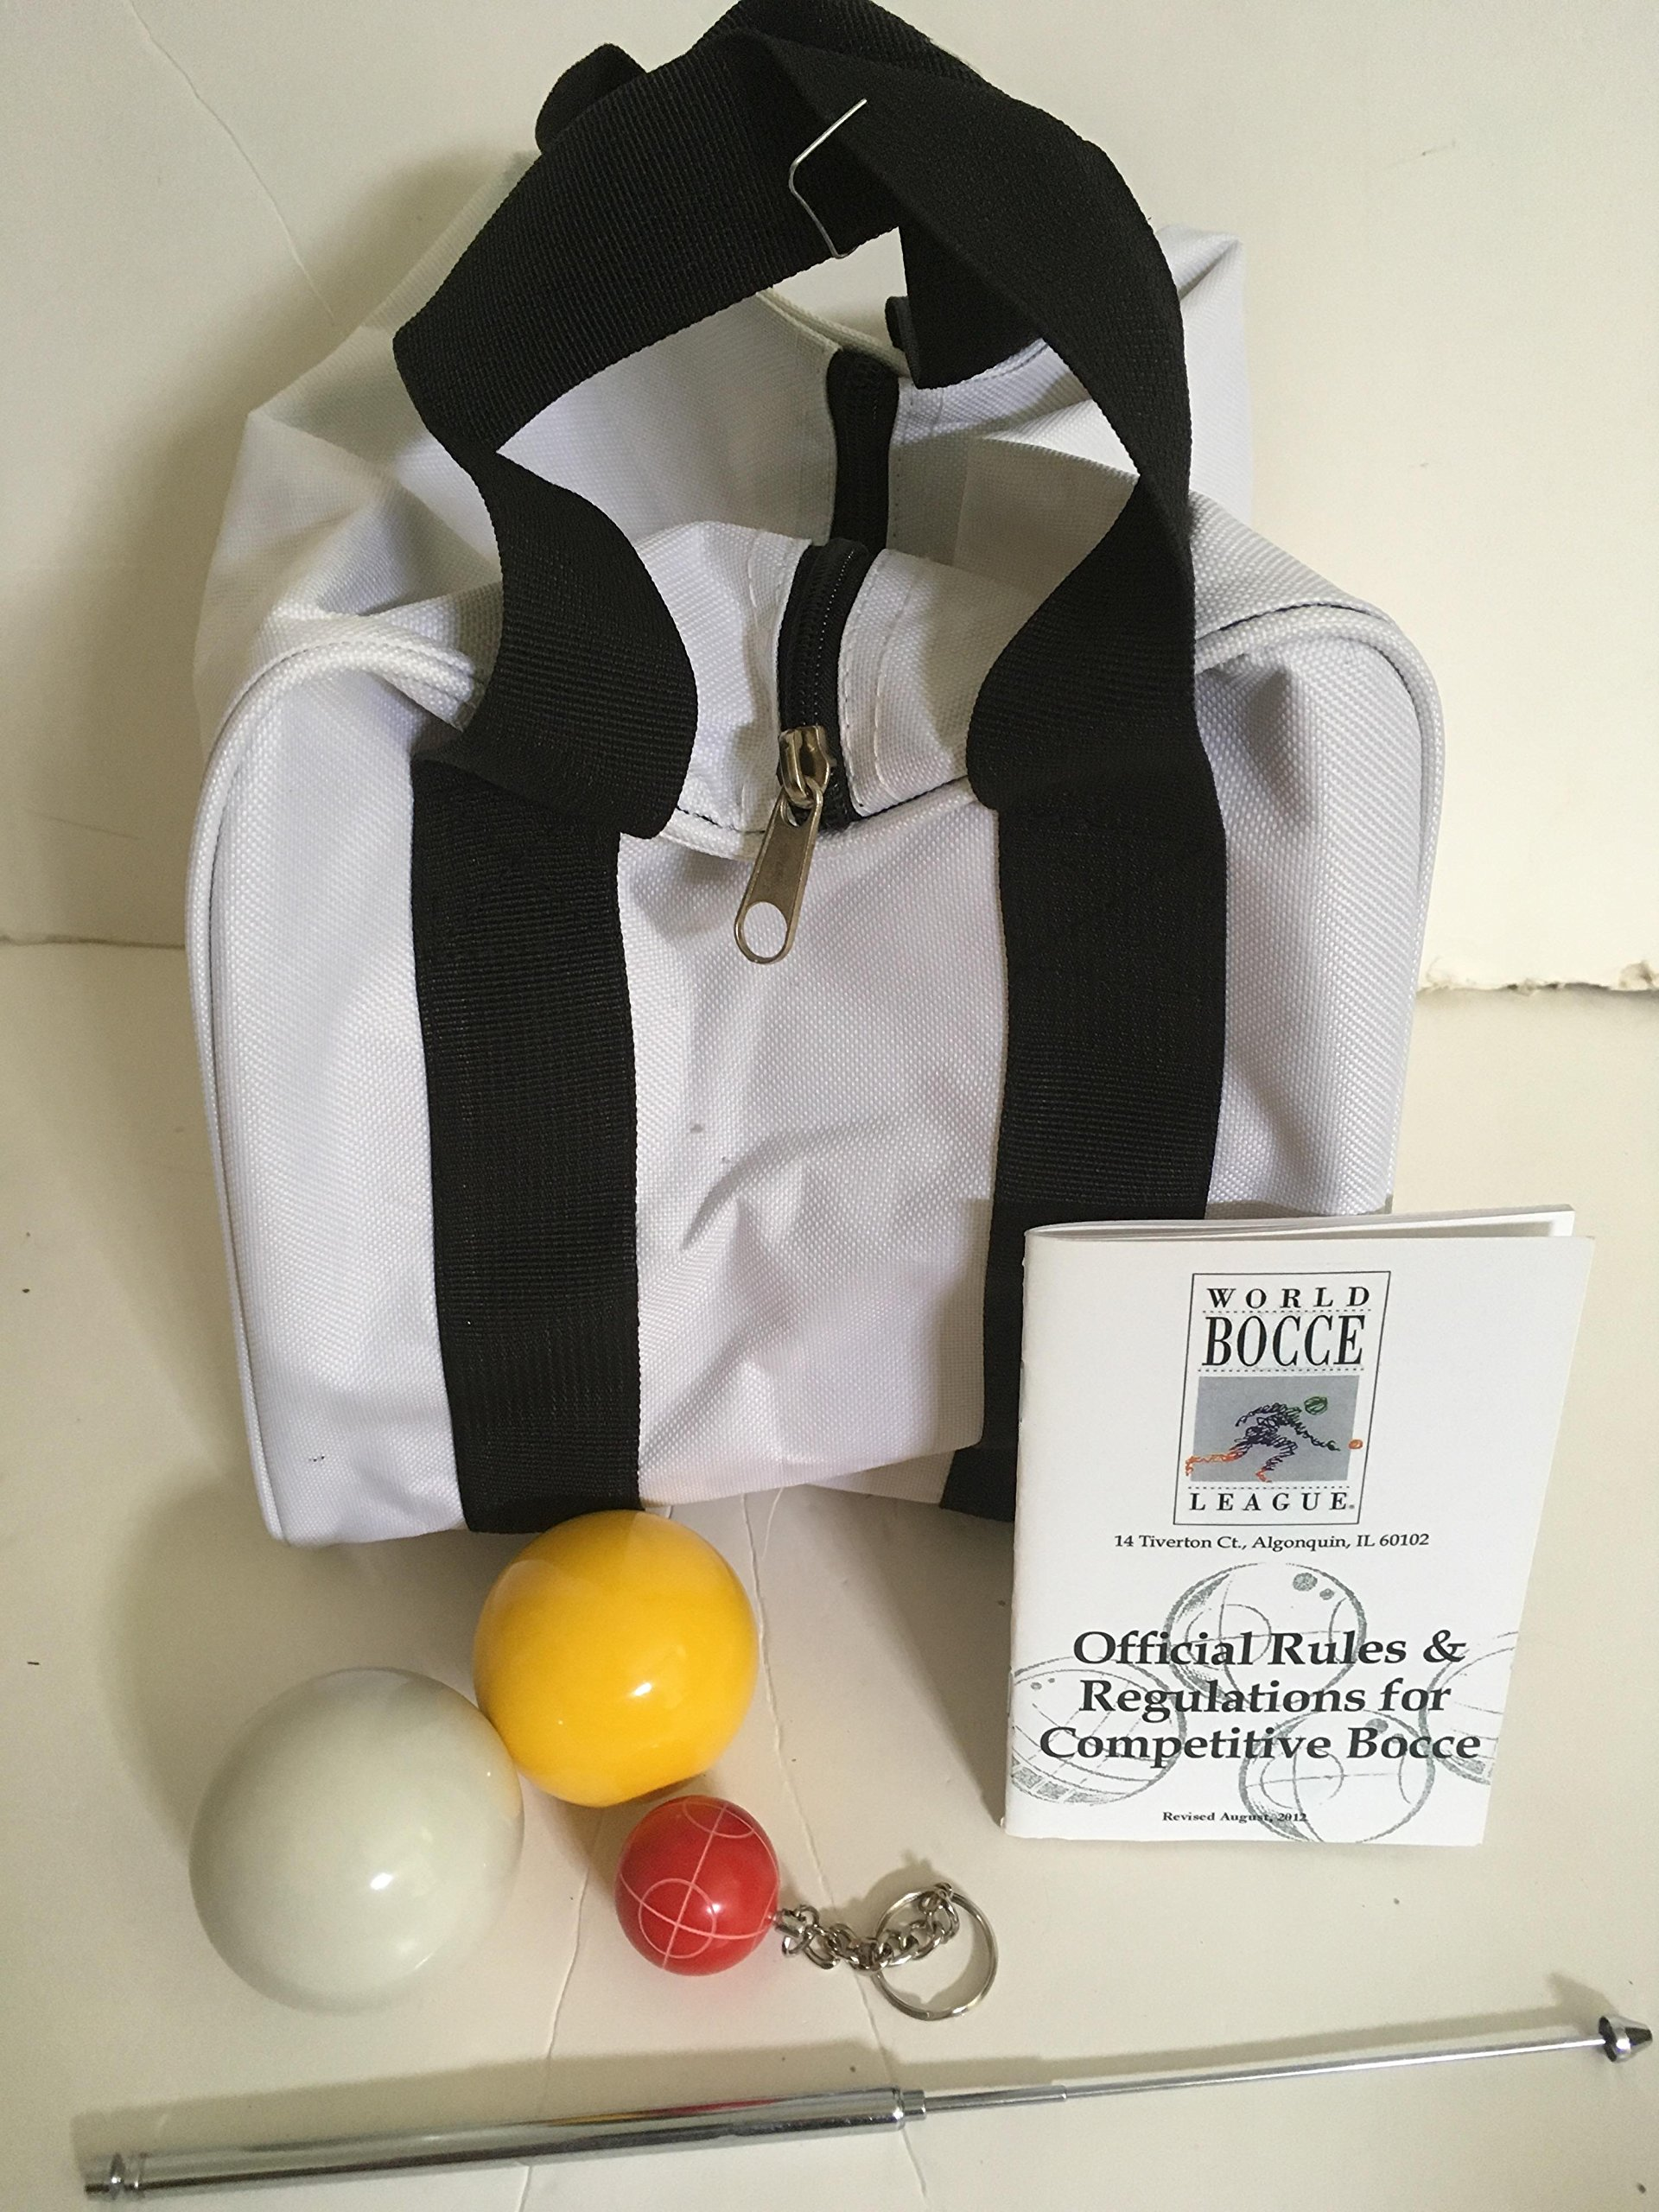 Unique Bocce Ball Accessories Package - Extra Heavy Duty Nylon Bocce Bag (White with Black Handles), yellow and white pallinas, Extendable Measuring Device, Rule Book and Keychain